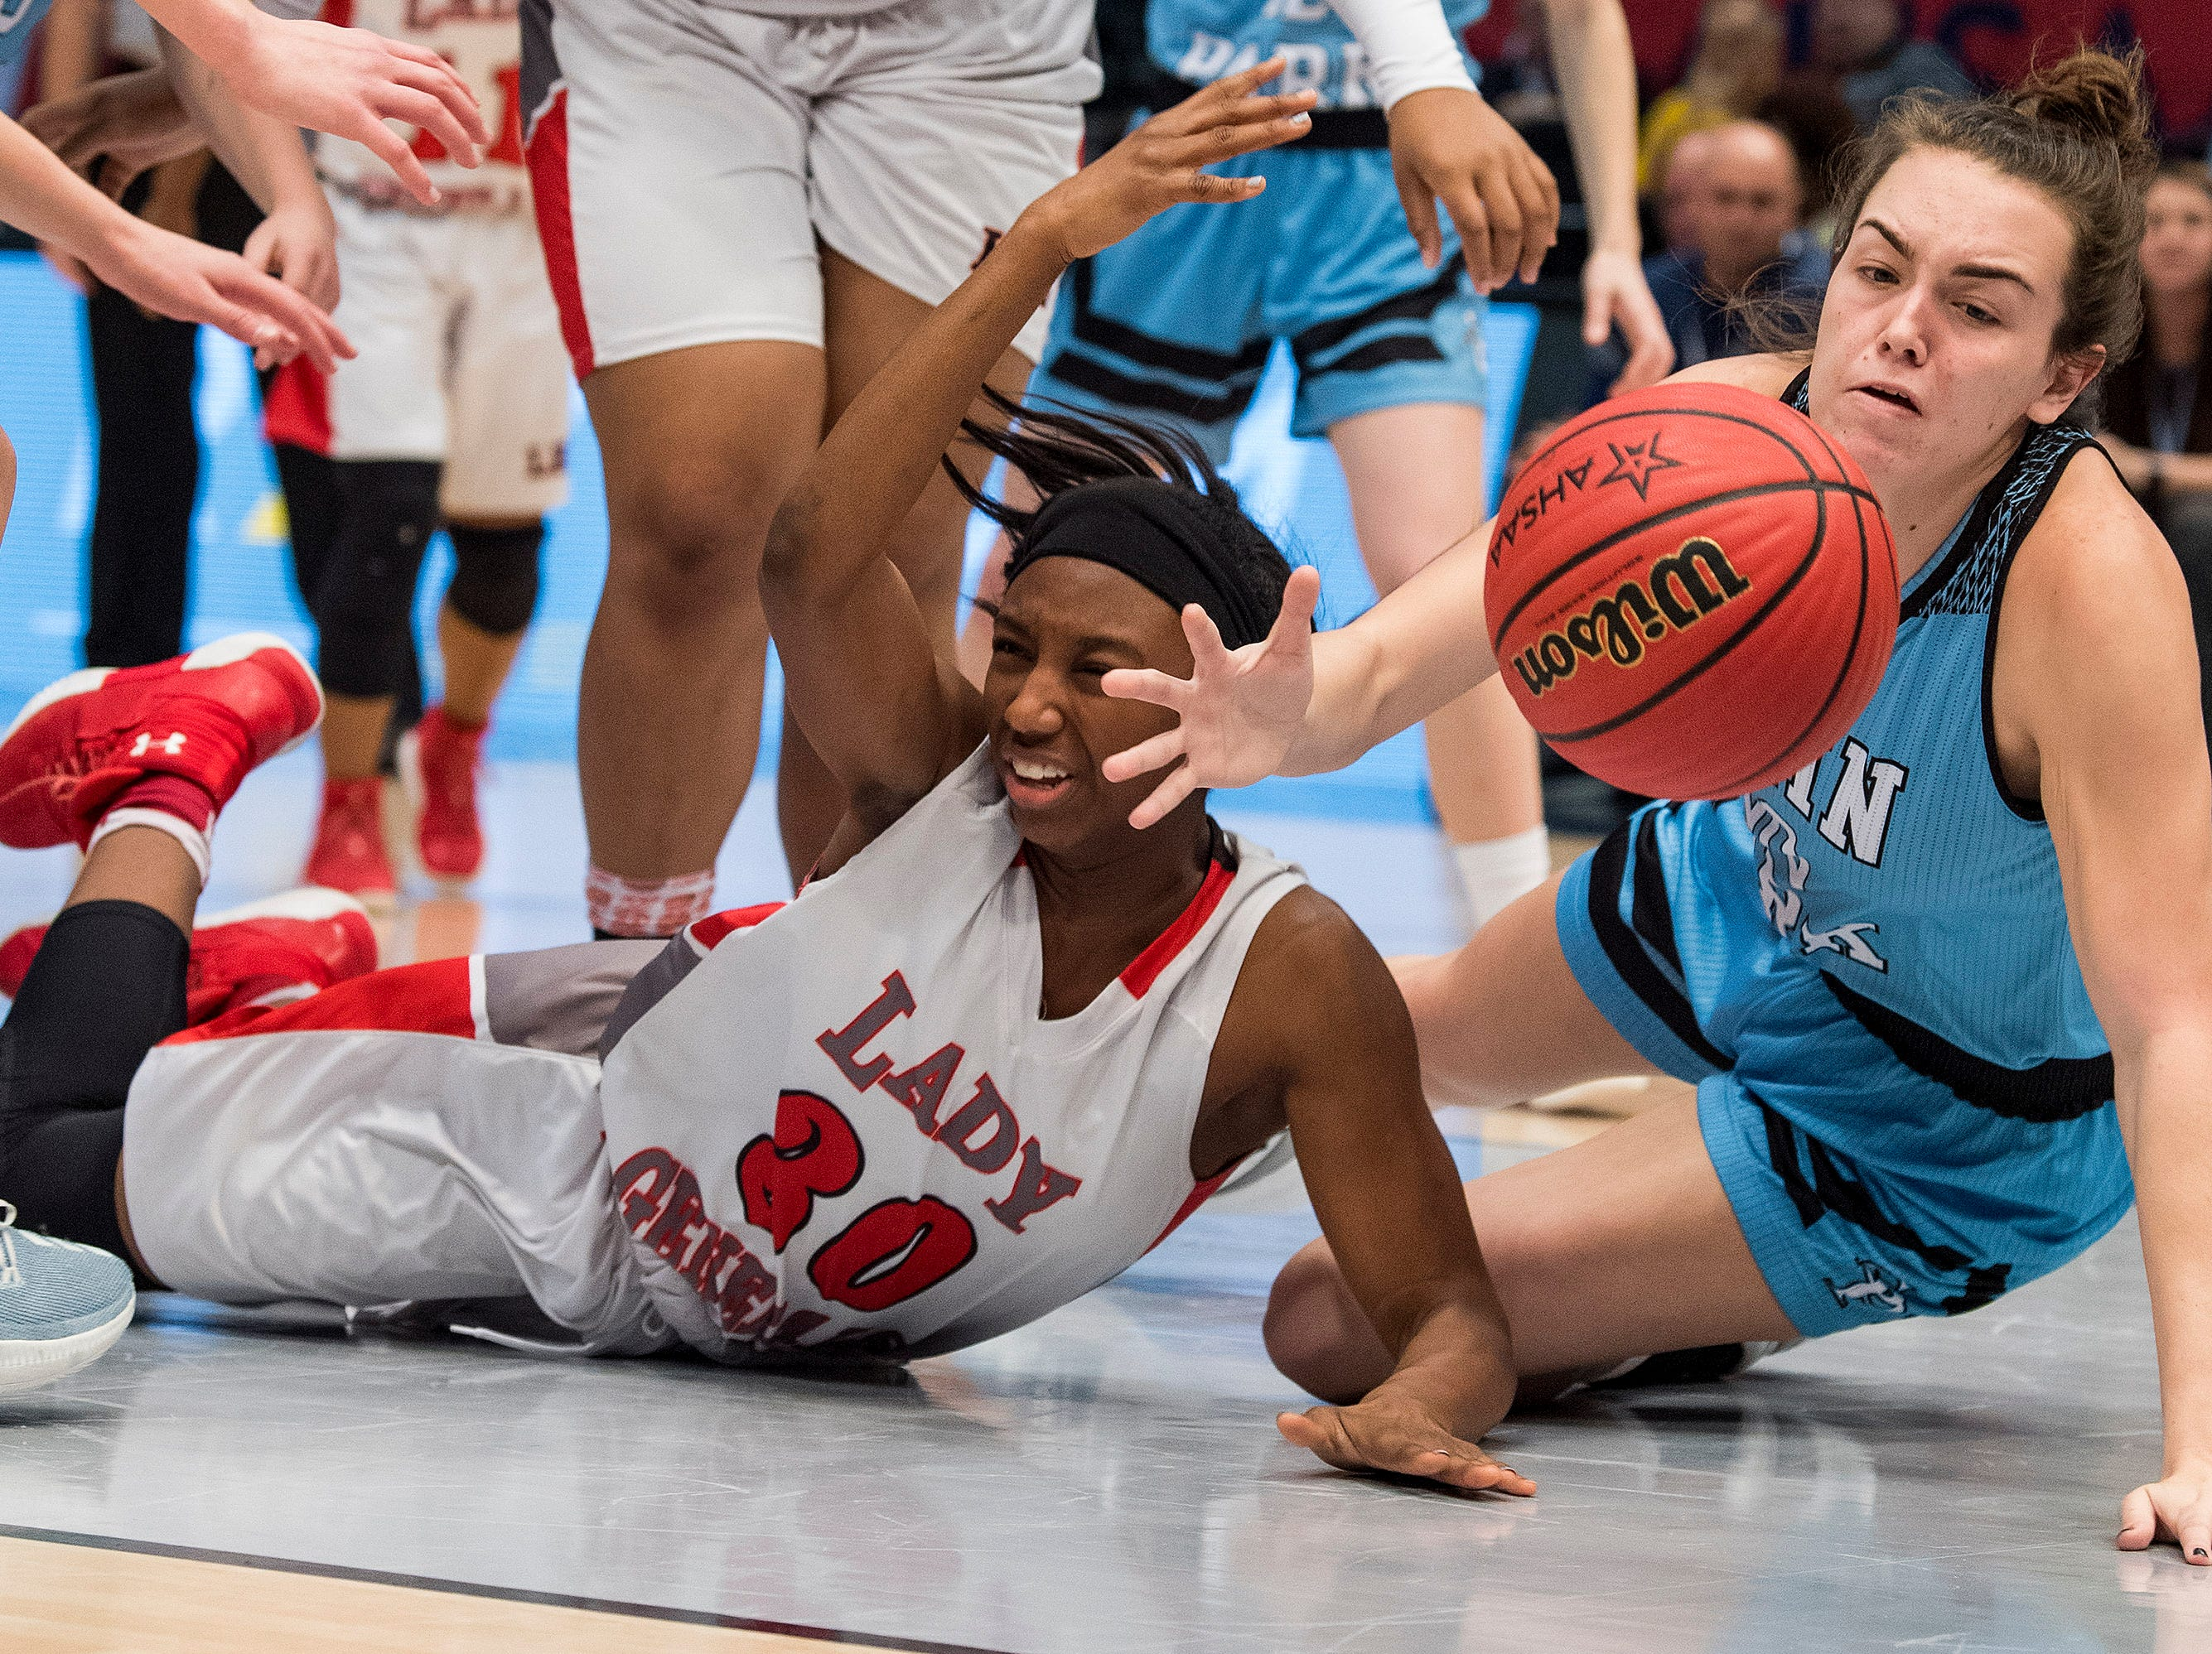 Lee's Dalayiah Crawford (30) and Spain Park's Barrett Herring go after a loose ball in their AHSAA State Semi-Final game at Legacy Arena in Birmingham, Ala. on Thursday March 1, 2018.